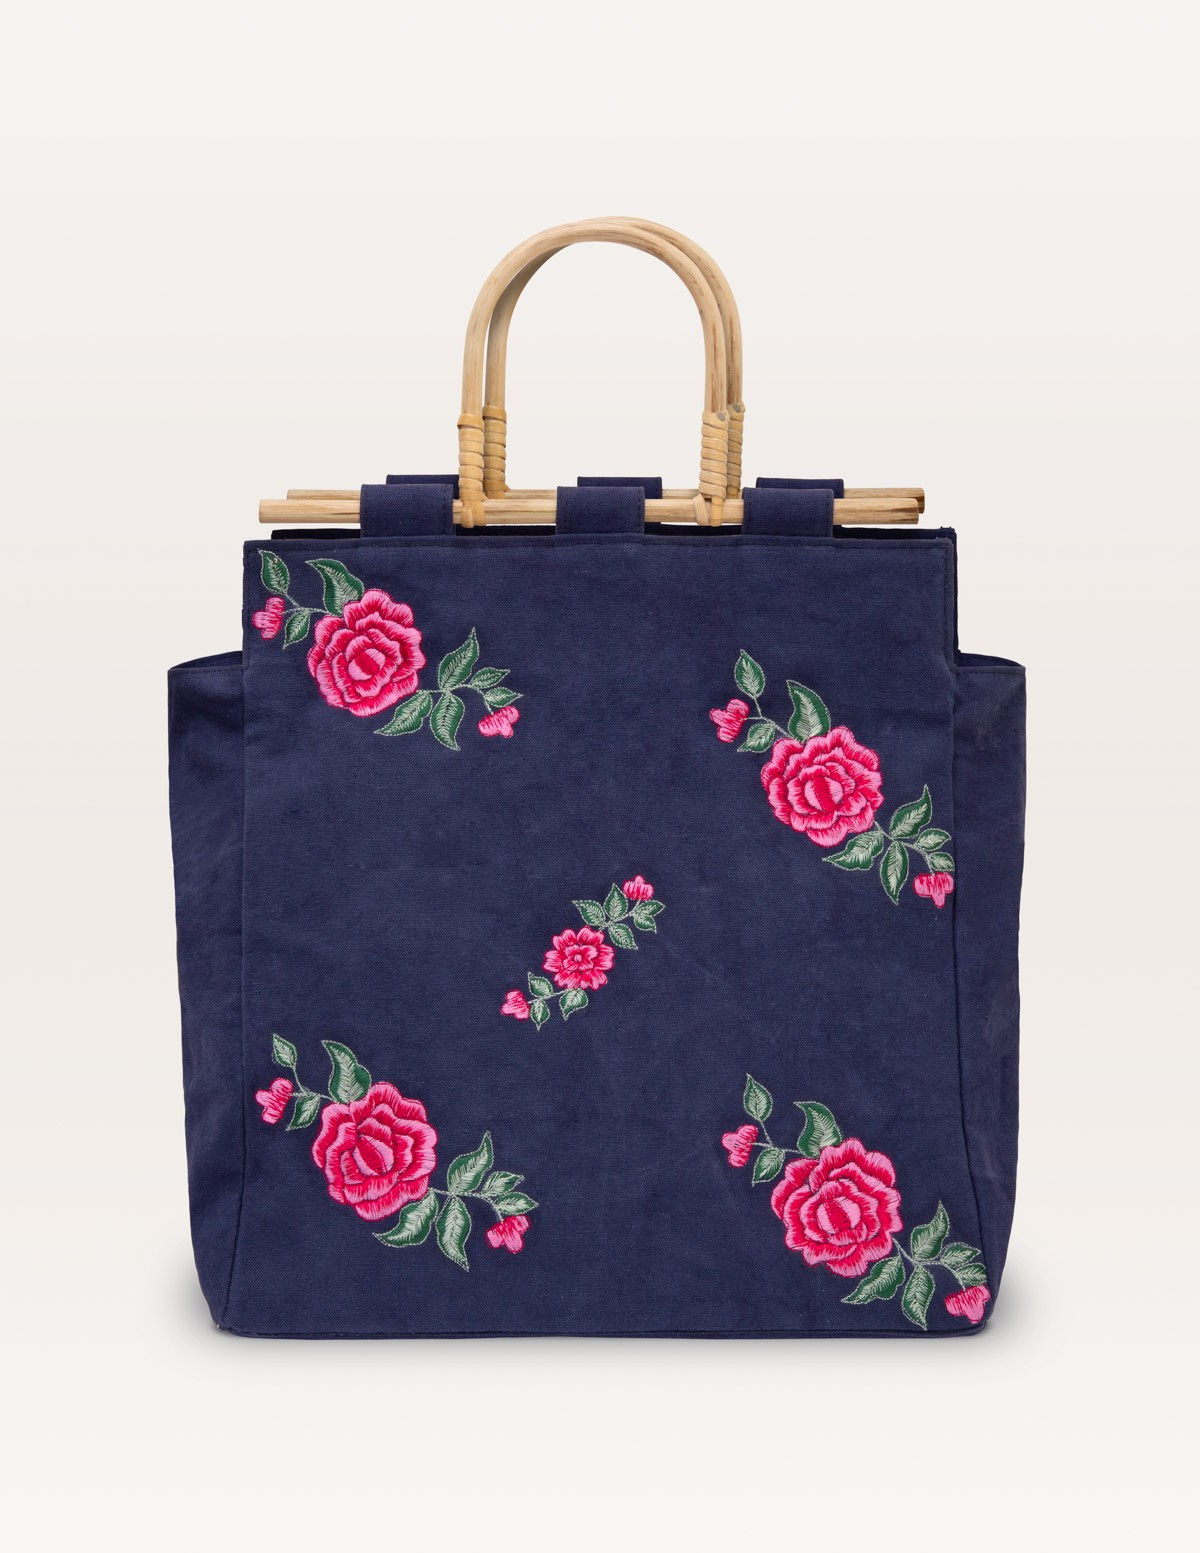 Embroidered bag - Item